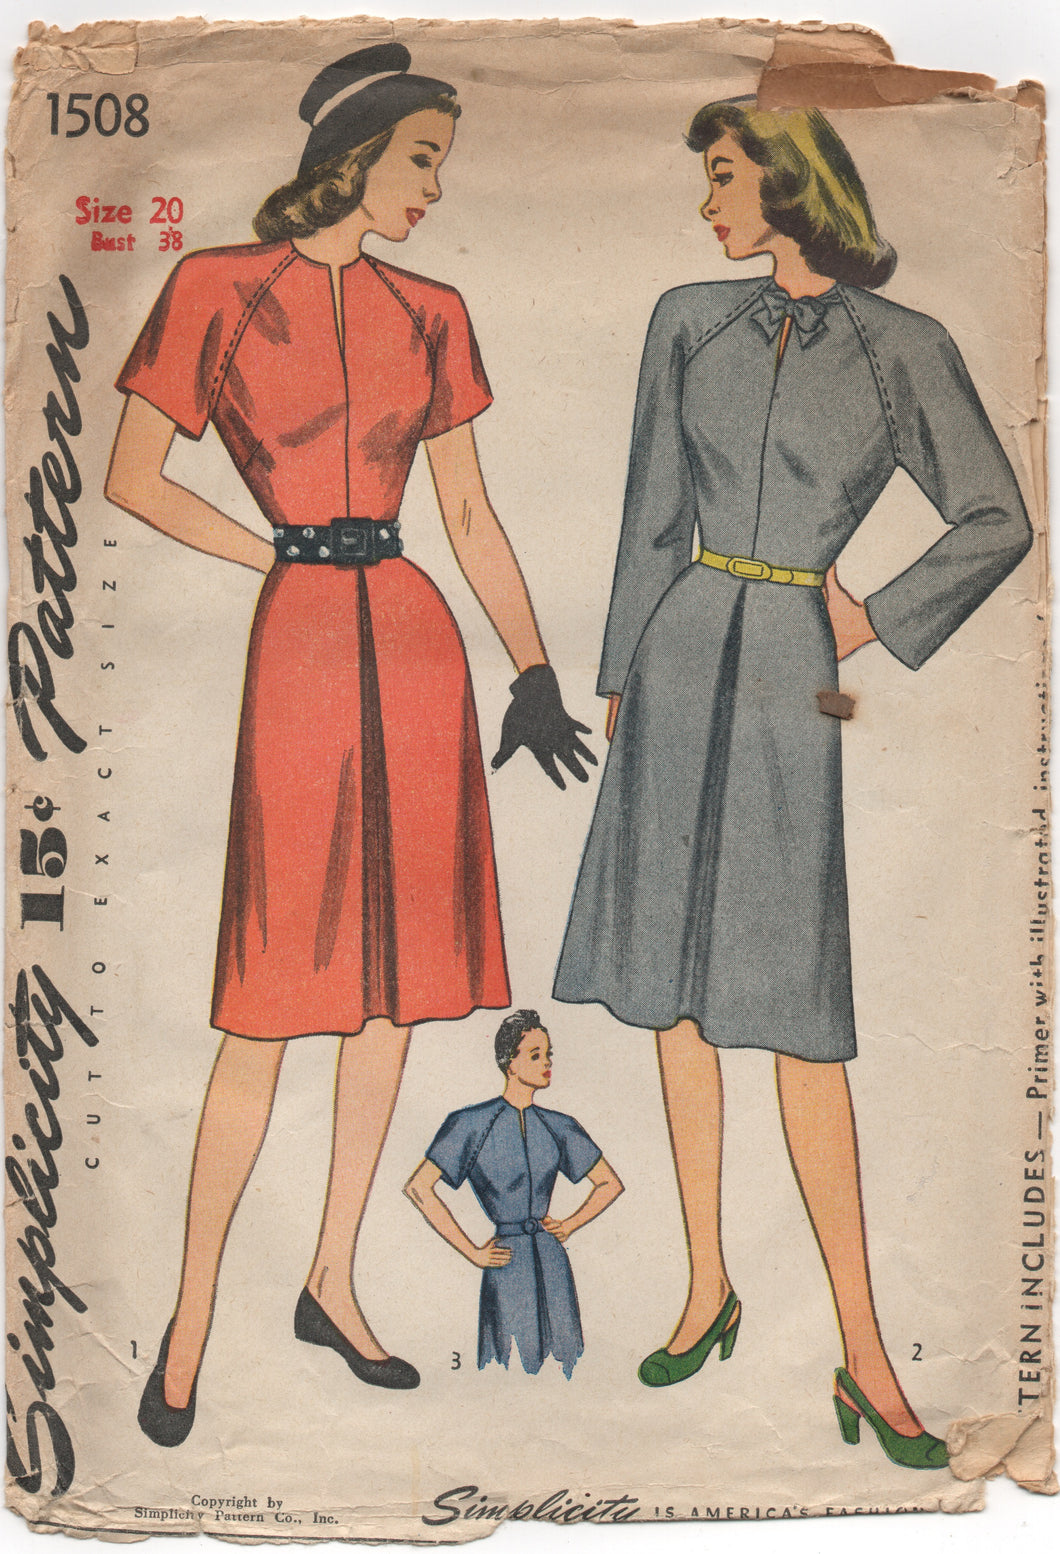 1940's Simplicity One Piece Dress with clean lines and bow detail - Bust 38